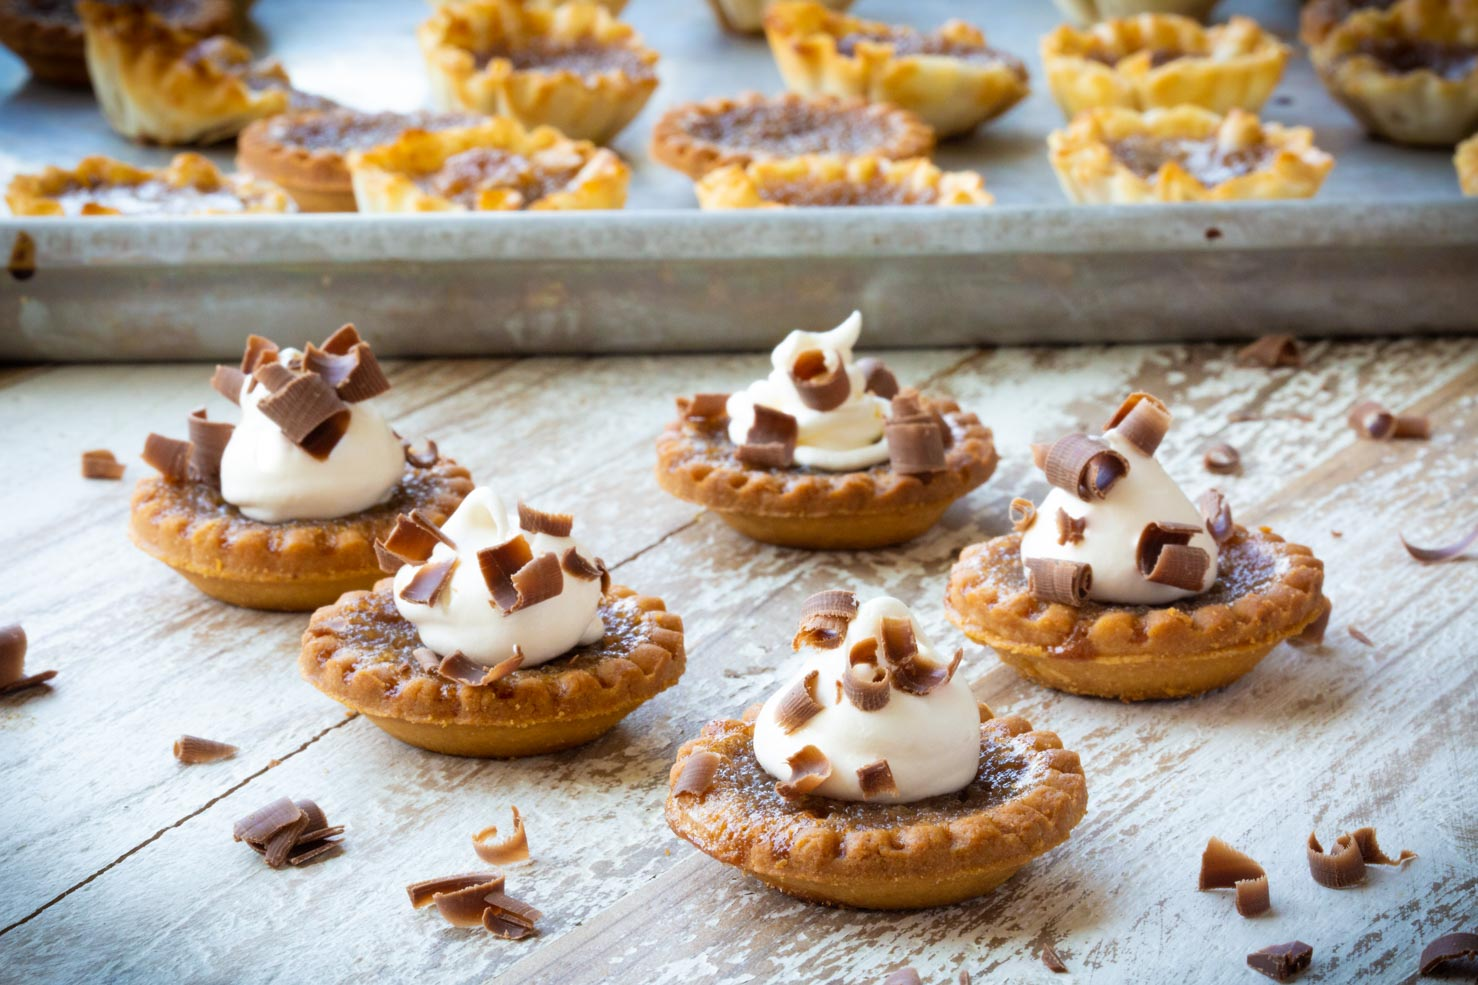 Decorated Pecan Butter Tarts